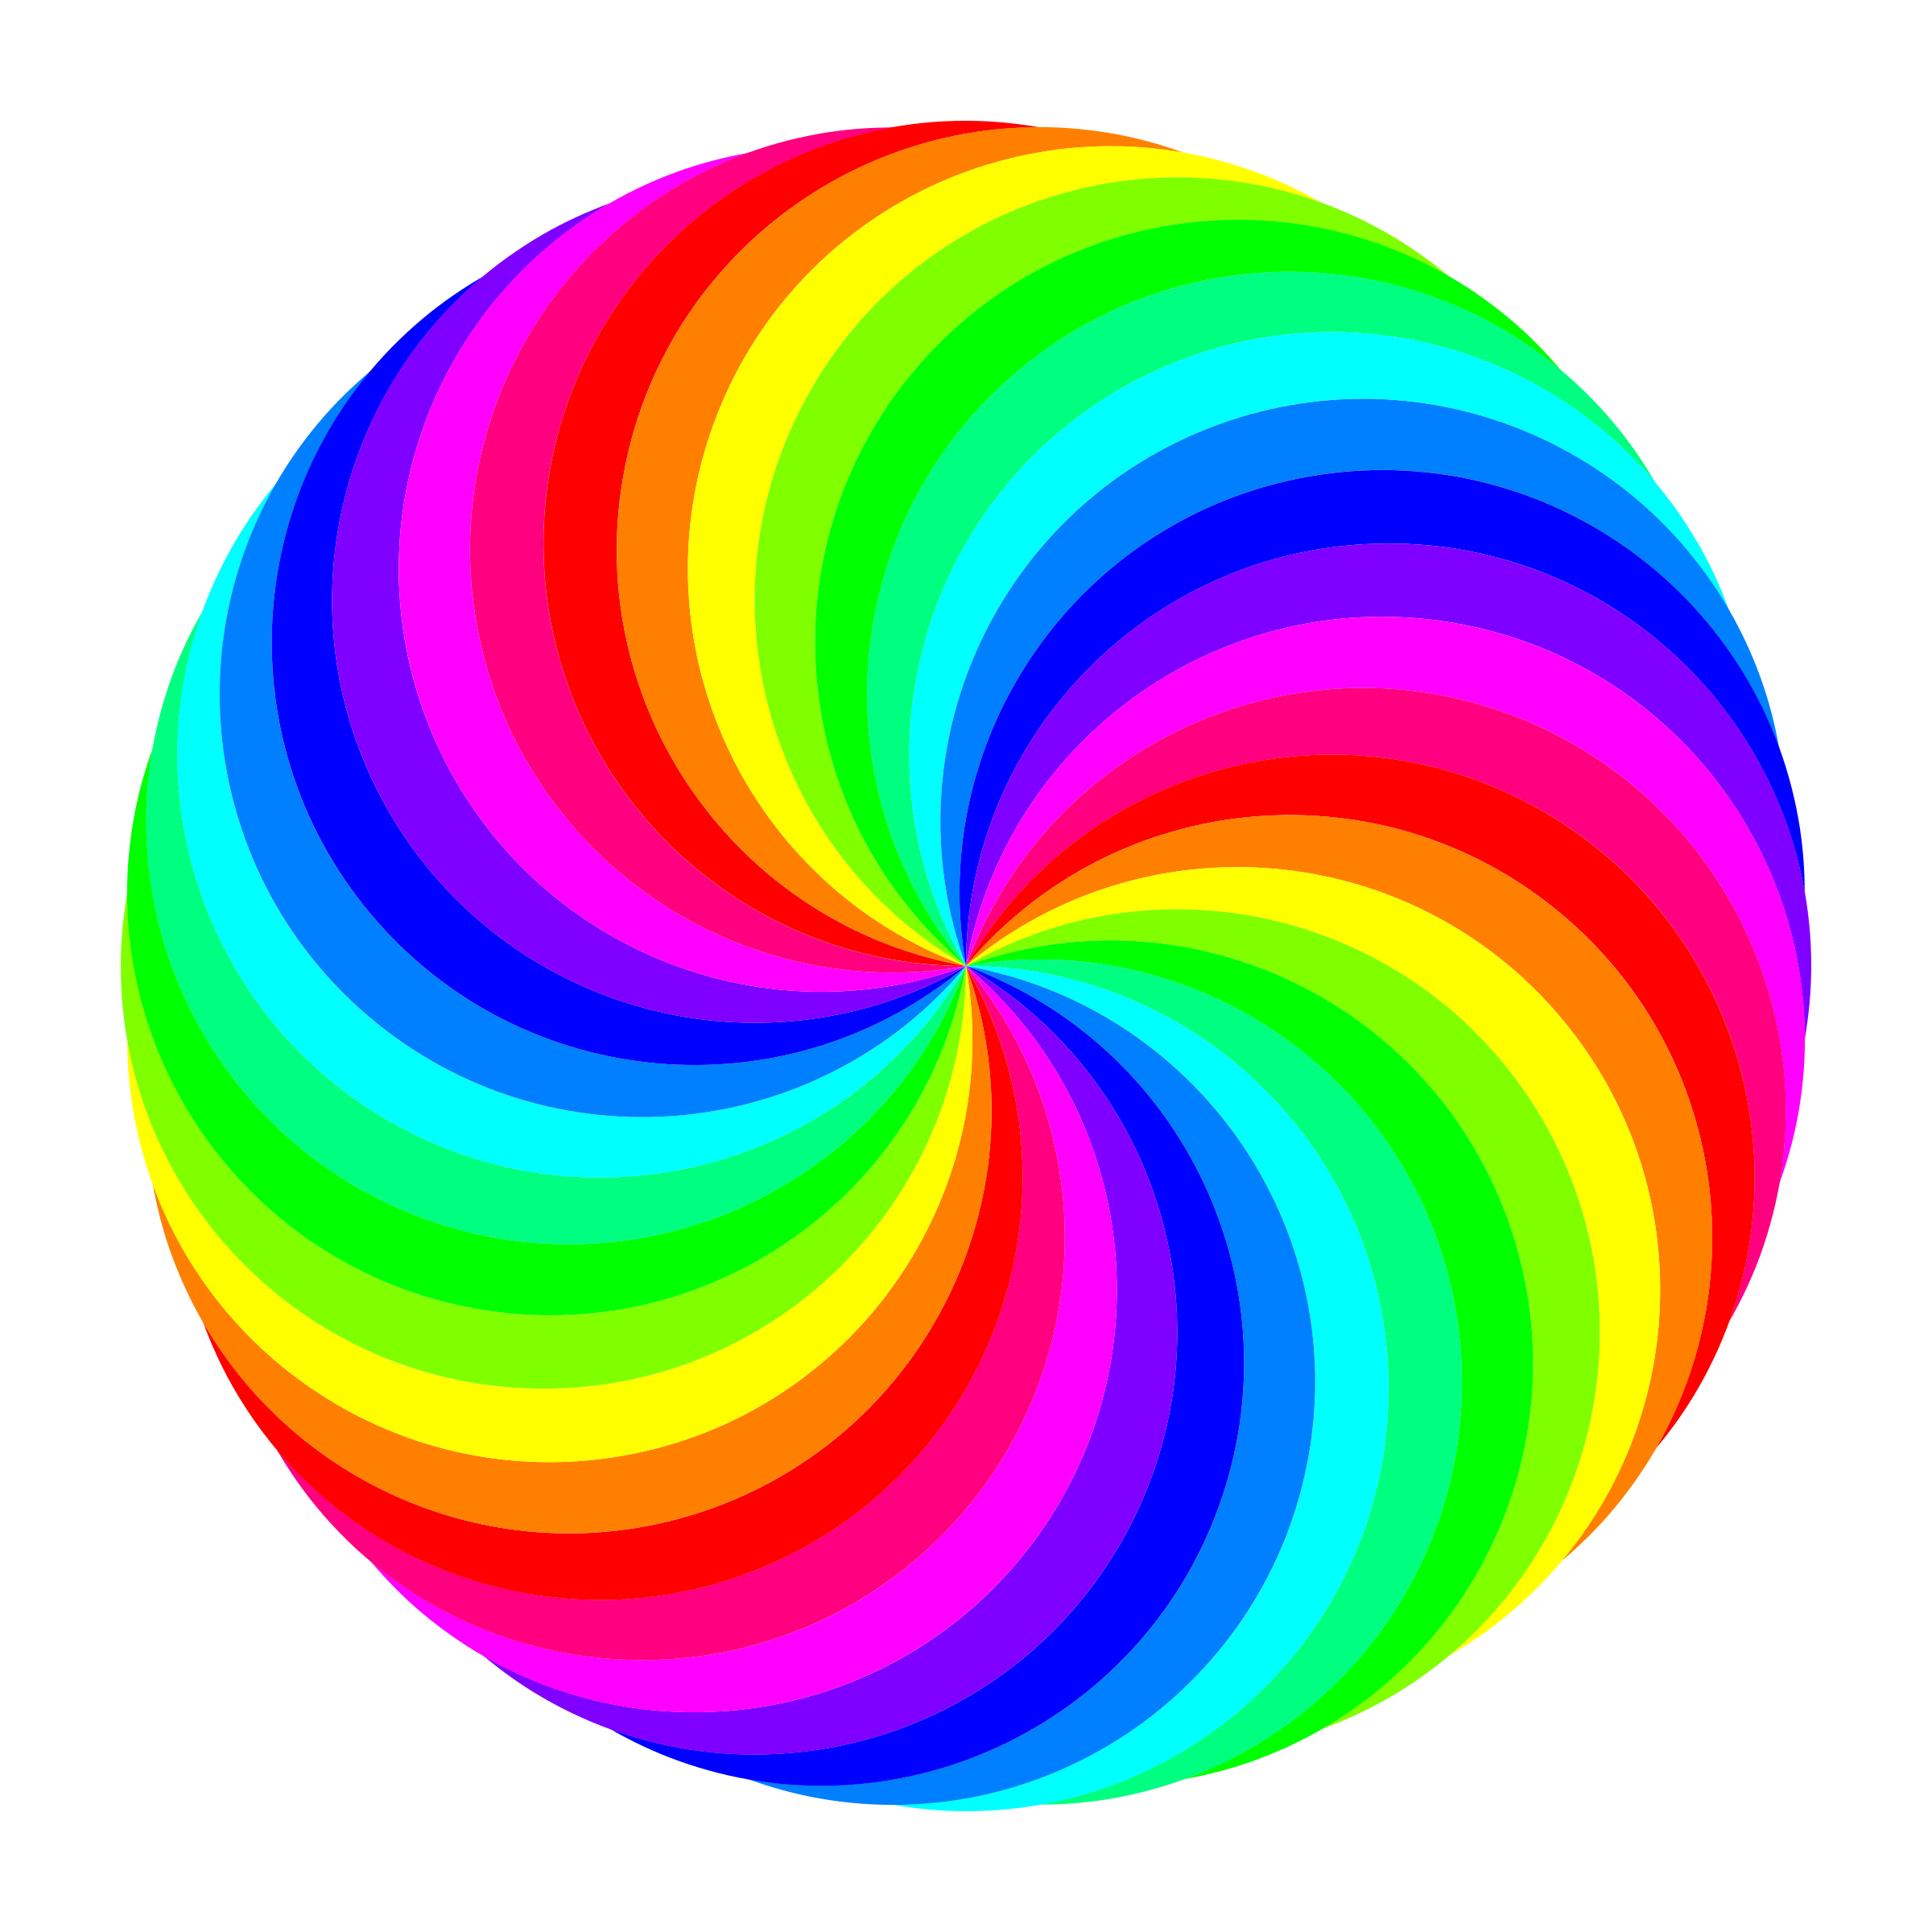 Swoosh svg swirl. Color clipart group with